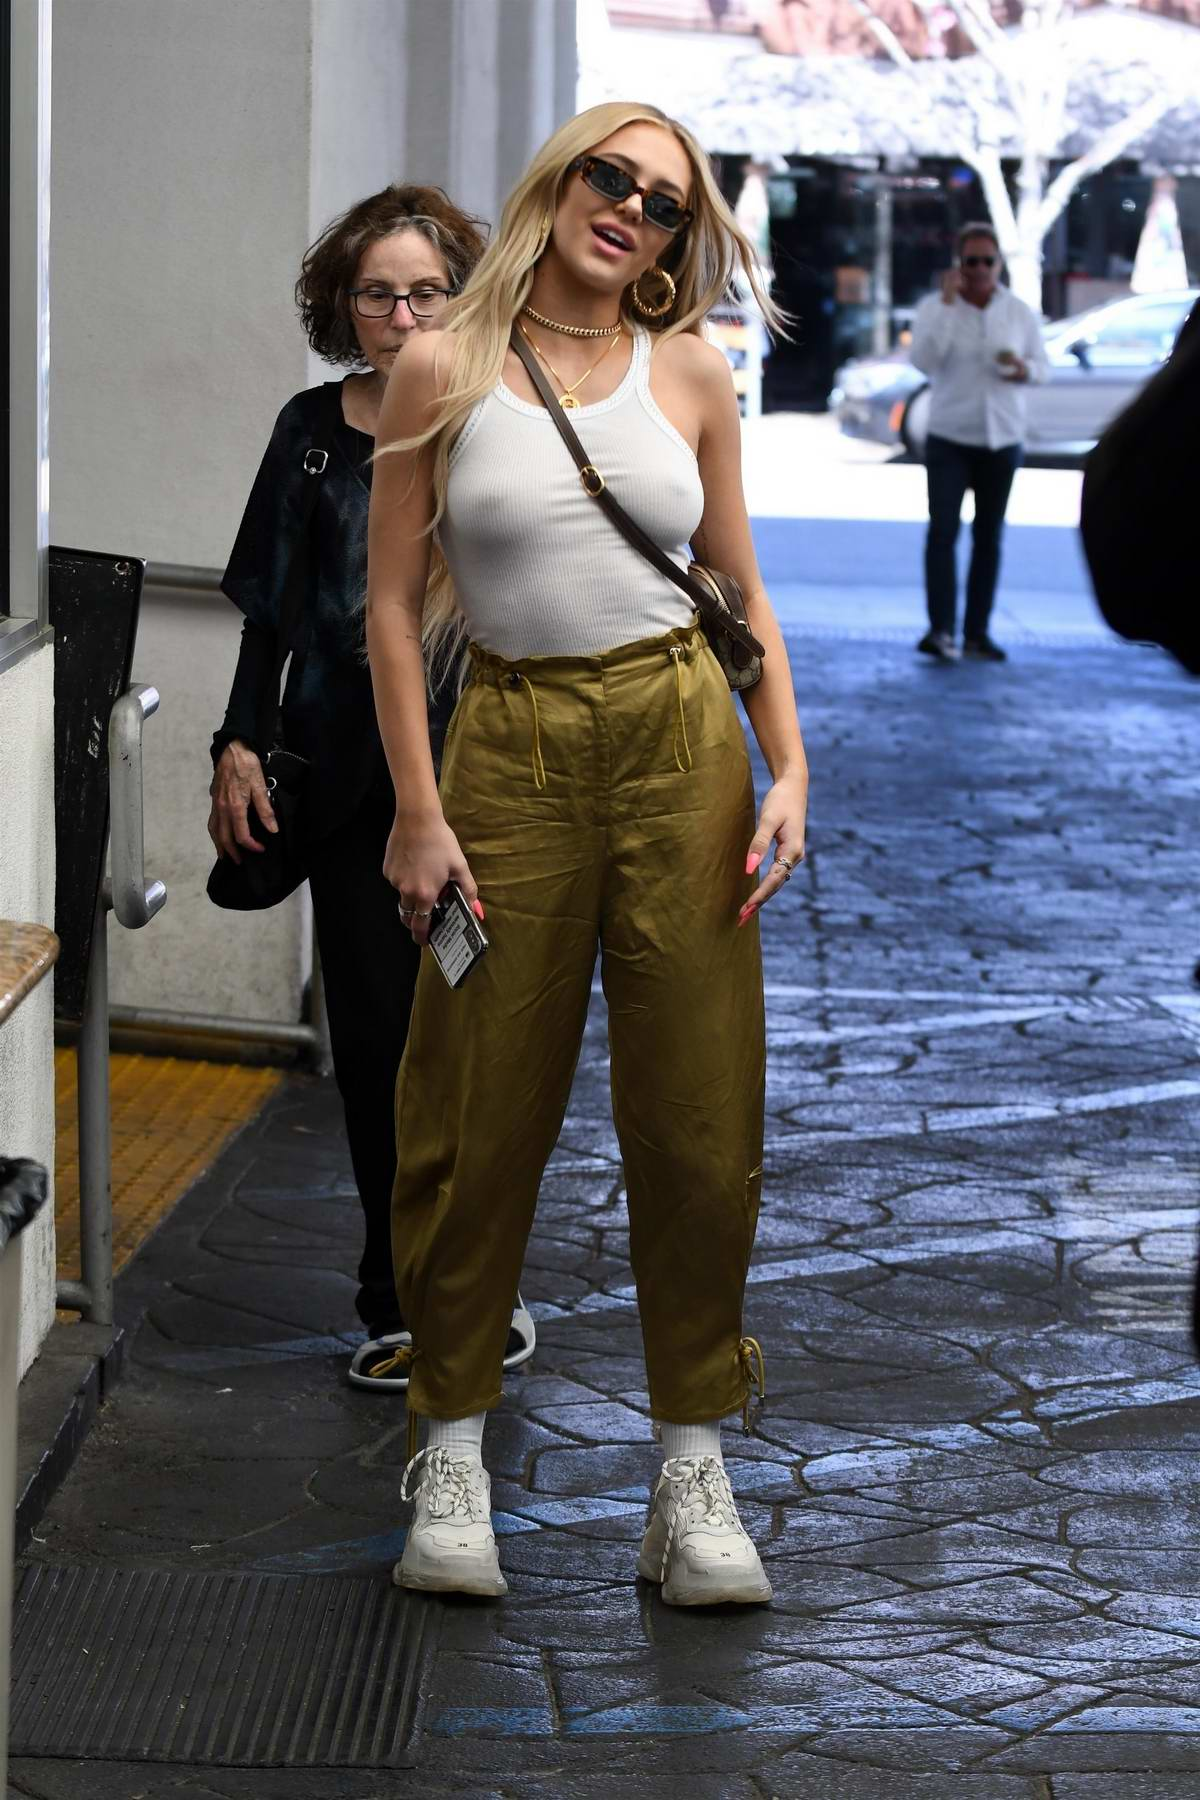 Delilah Hamlin rocks a white tank top and olive green pants as she steps out after lunch at E Baldi in Beverly Hills, Los Angeles